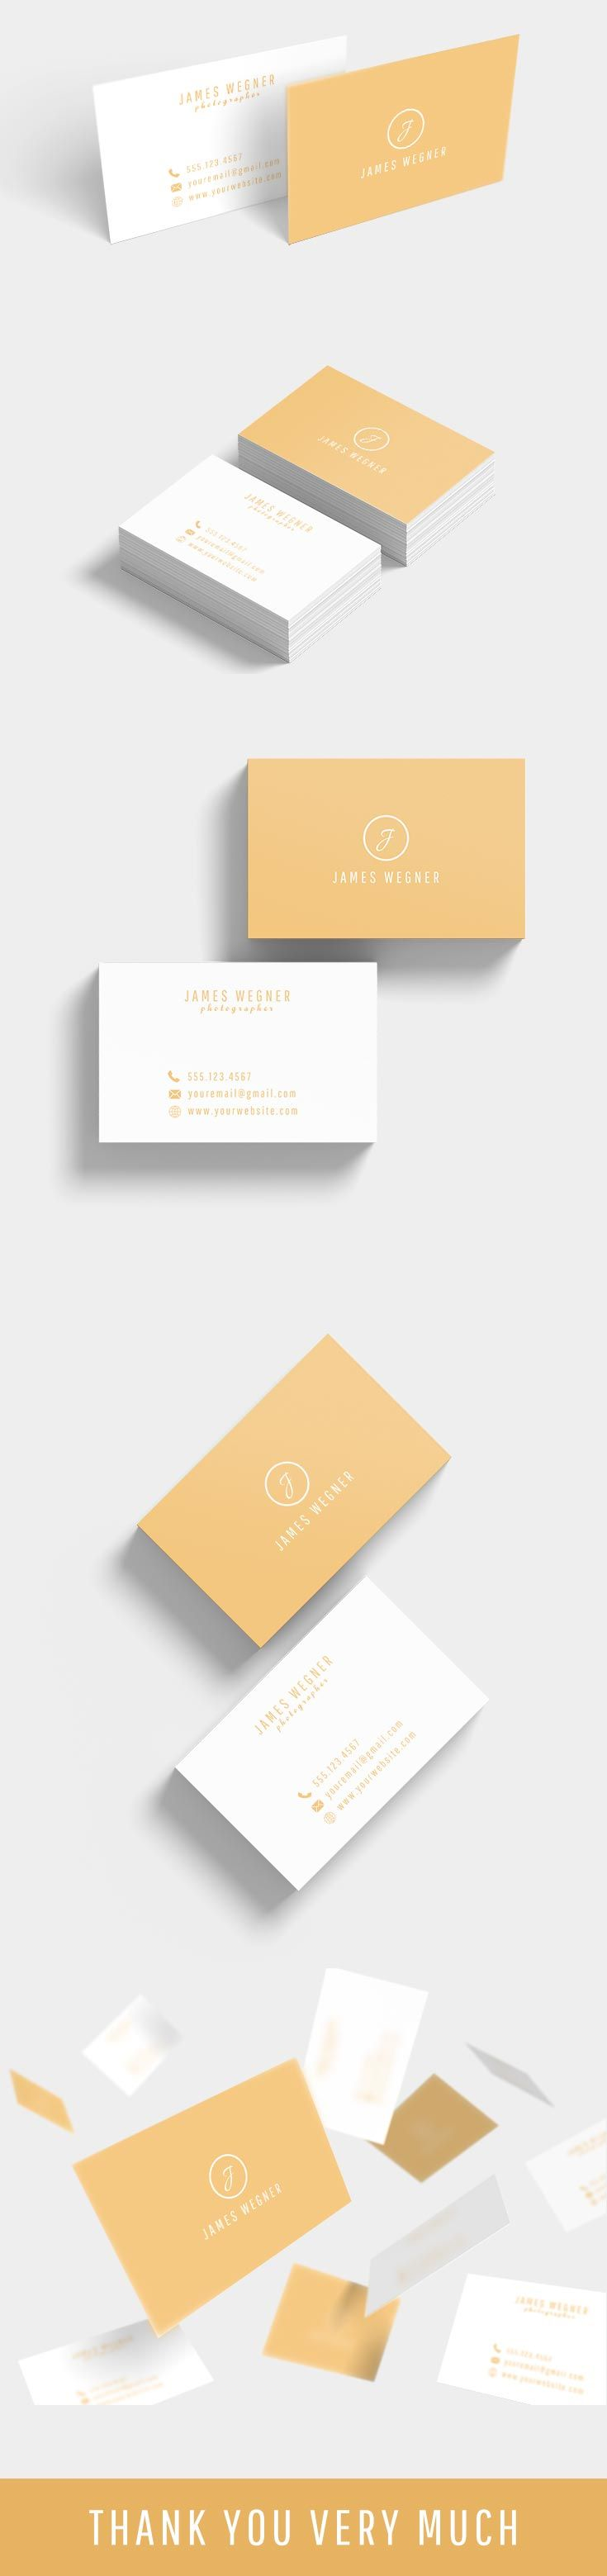 18 best Business cards images on Pinterest | Business cards ...